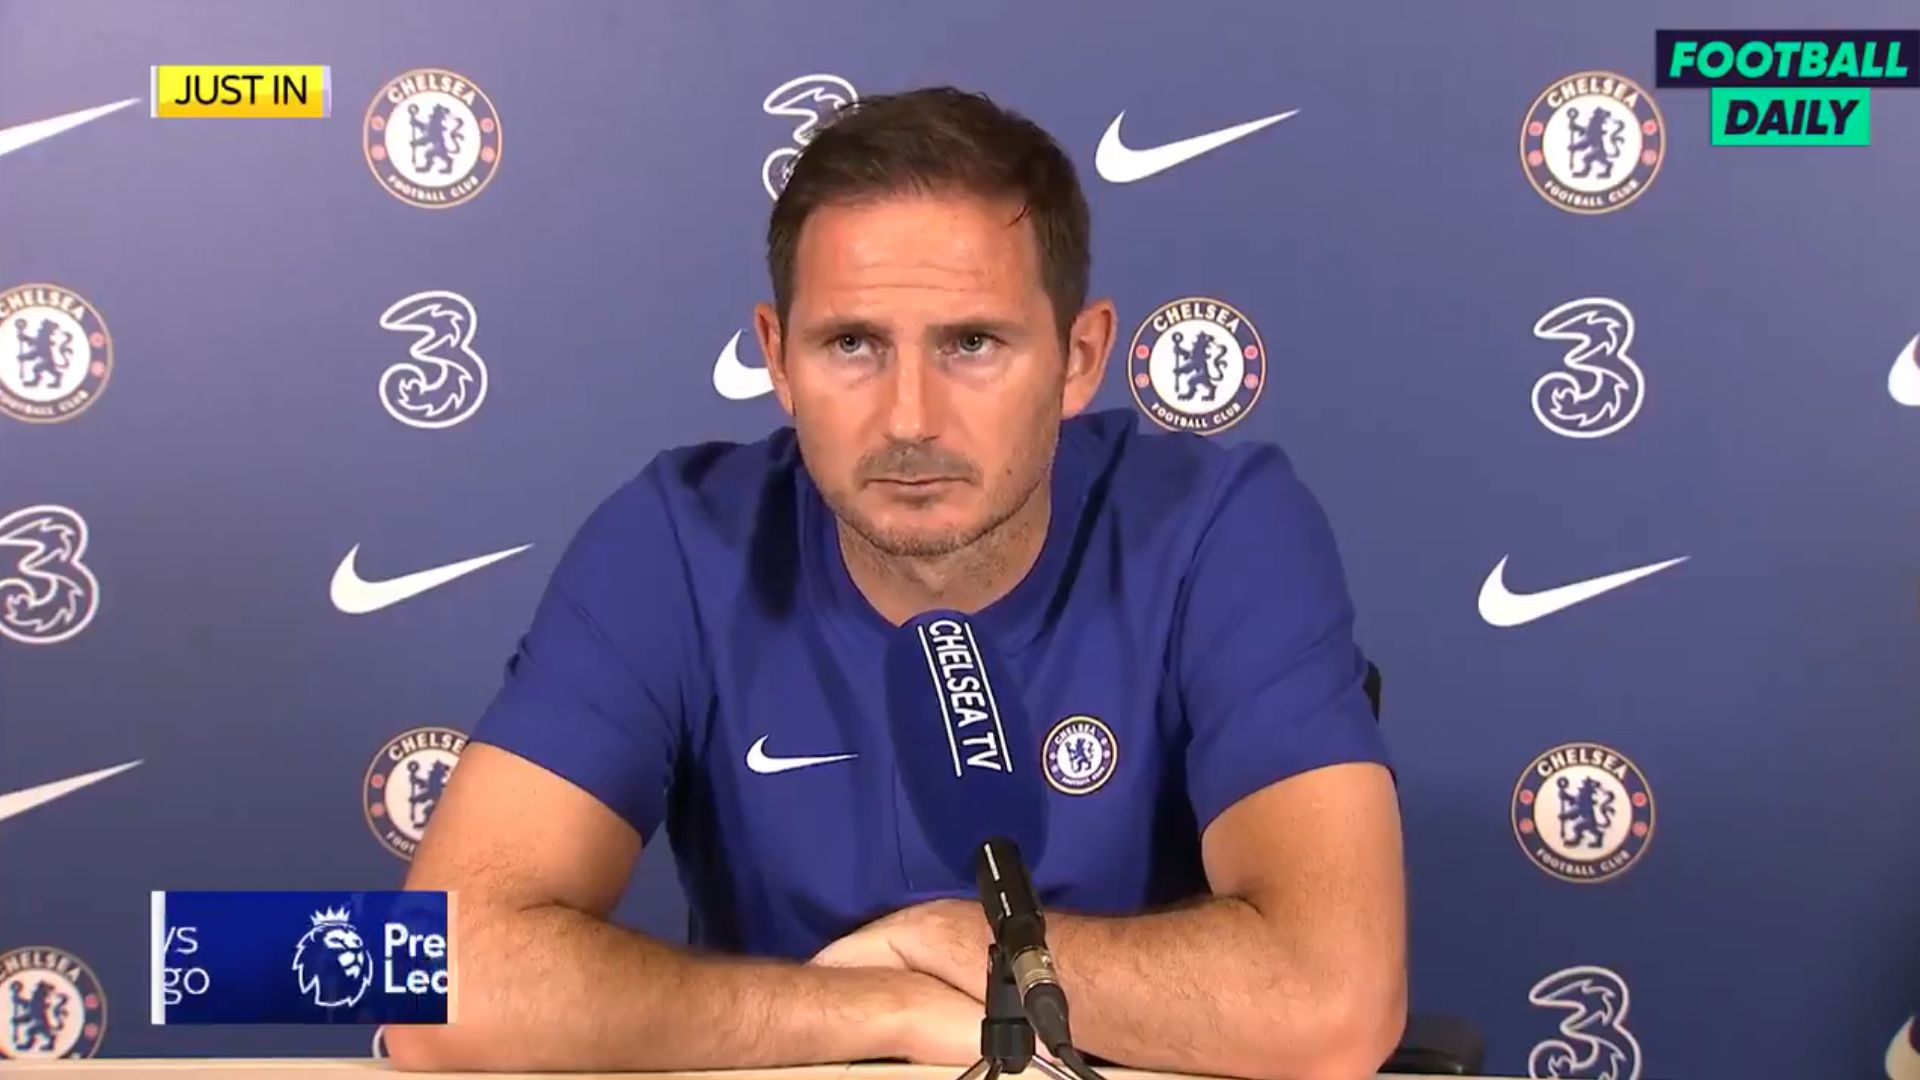 Video): Frank Lampard focused on closing the gap not winning the title »  Chelsea News